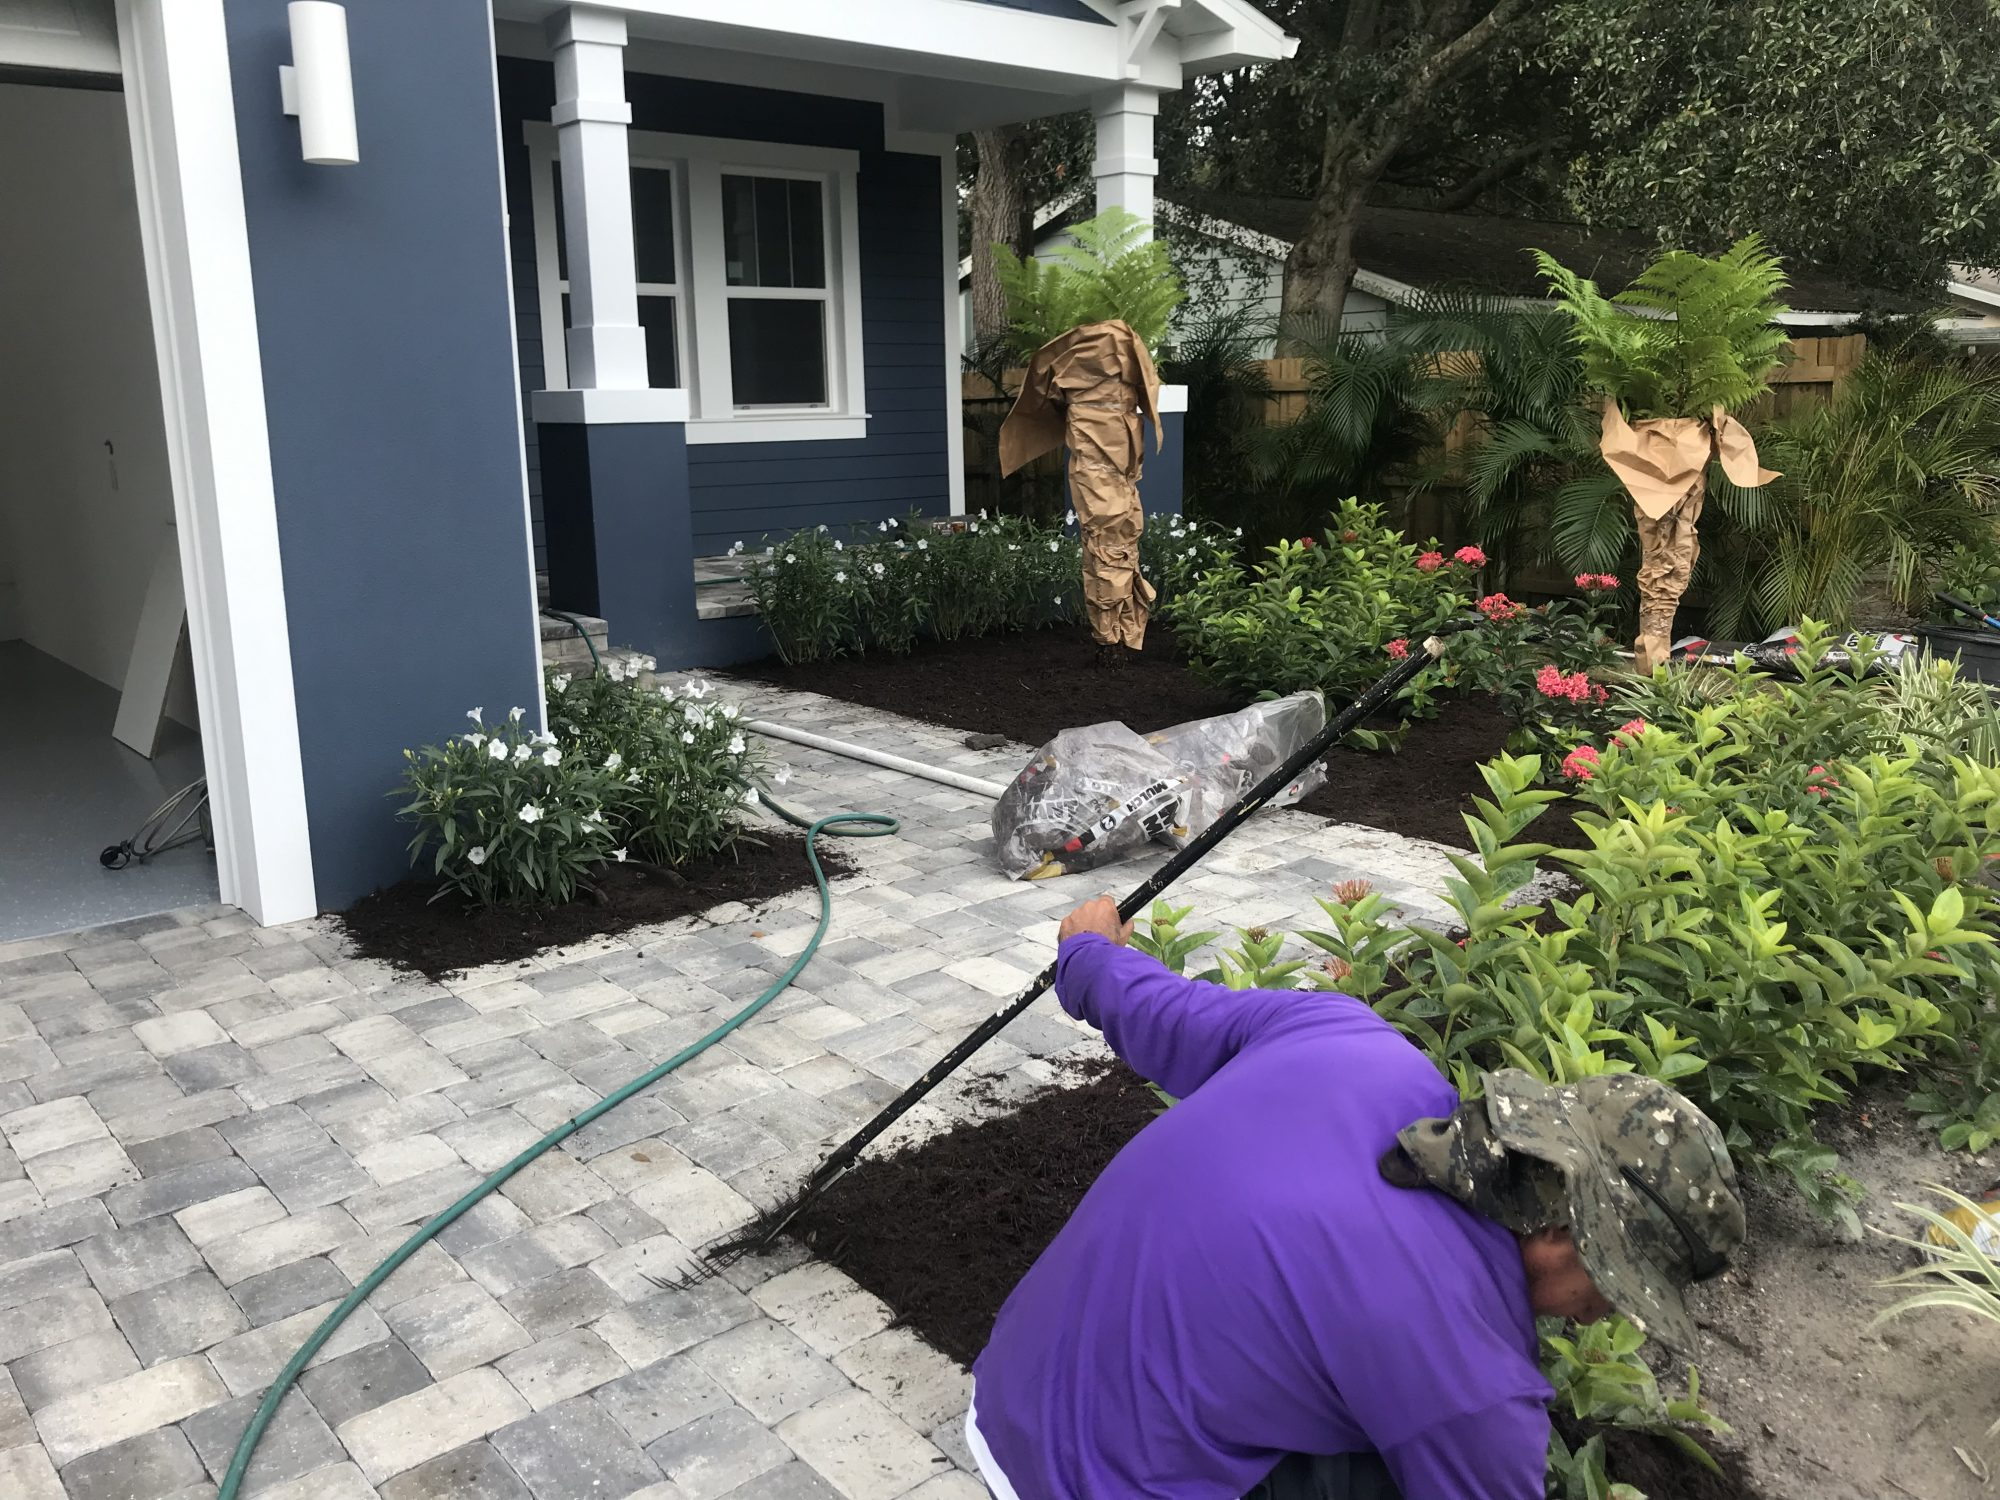 A gardener arranges mulch in a new flower bed.